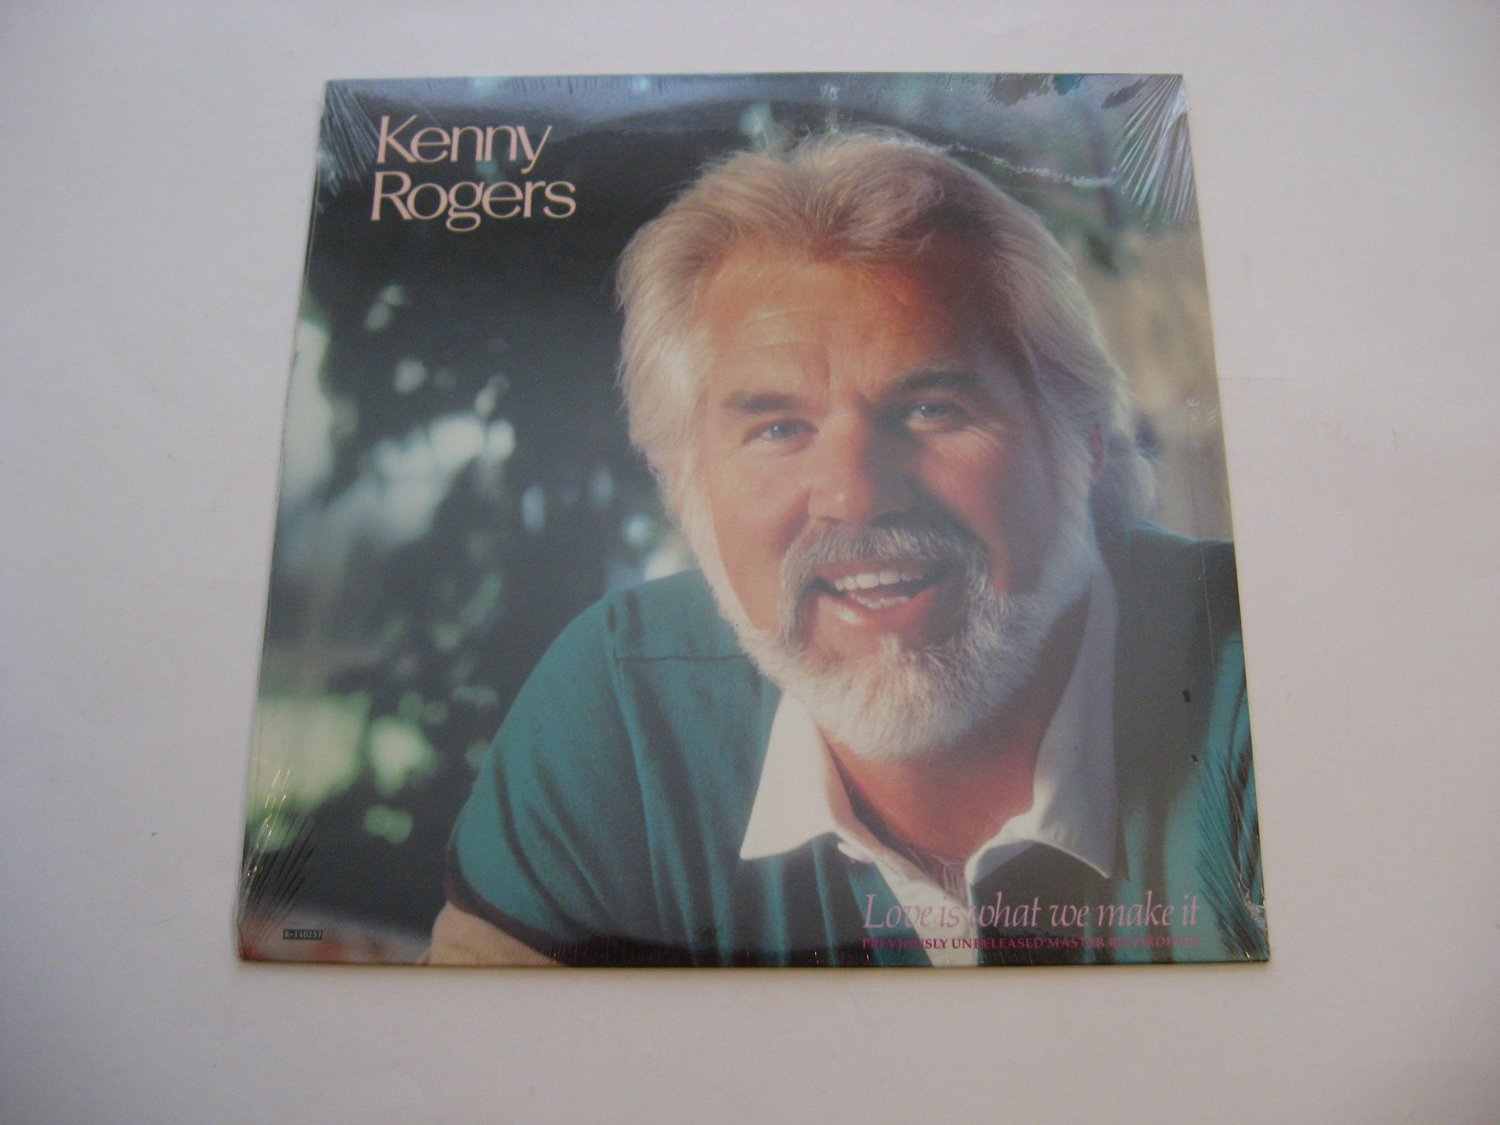 Factory Sealed! - Kenny Rogers - Love Is What We Make It - Circa 1985